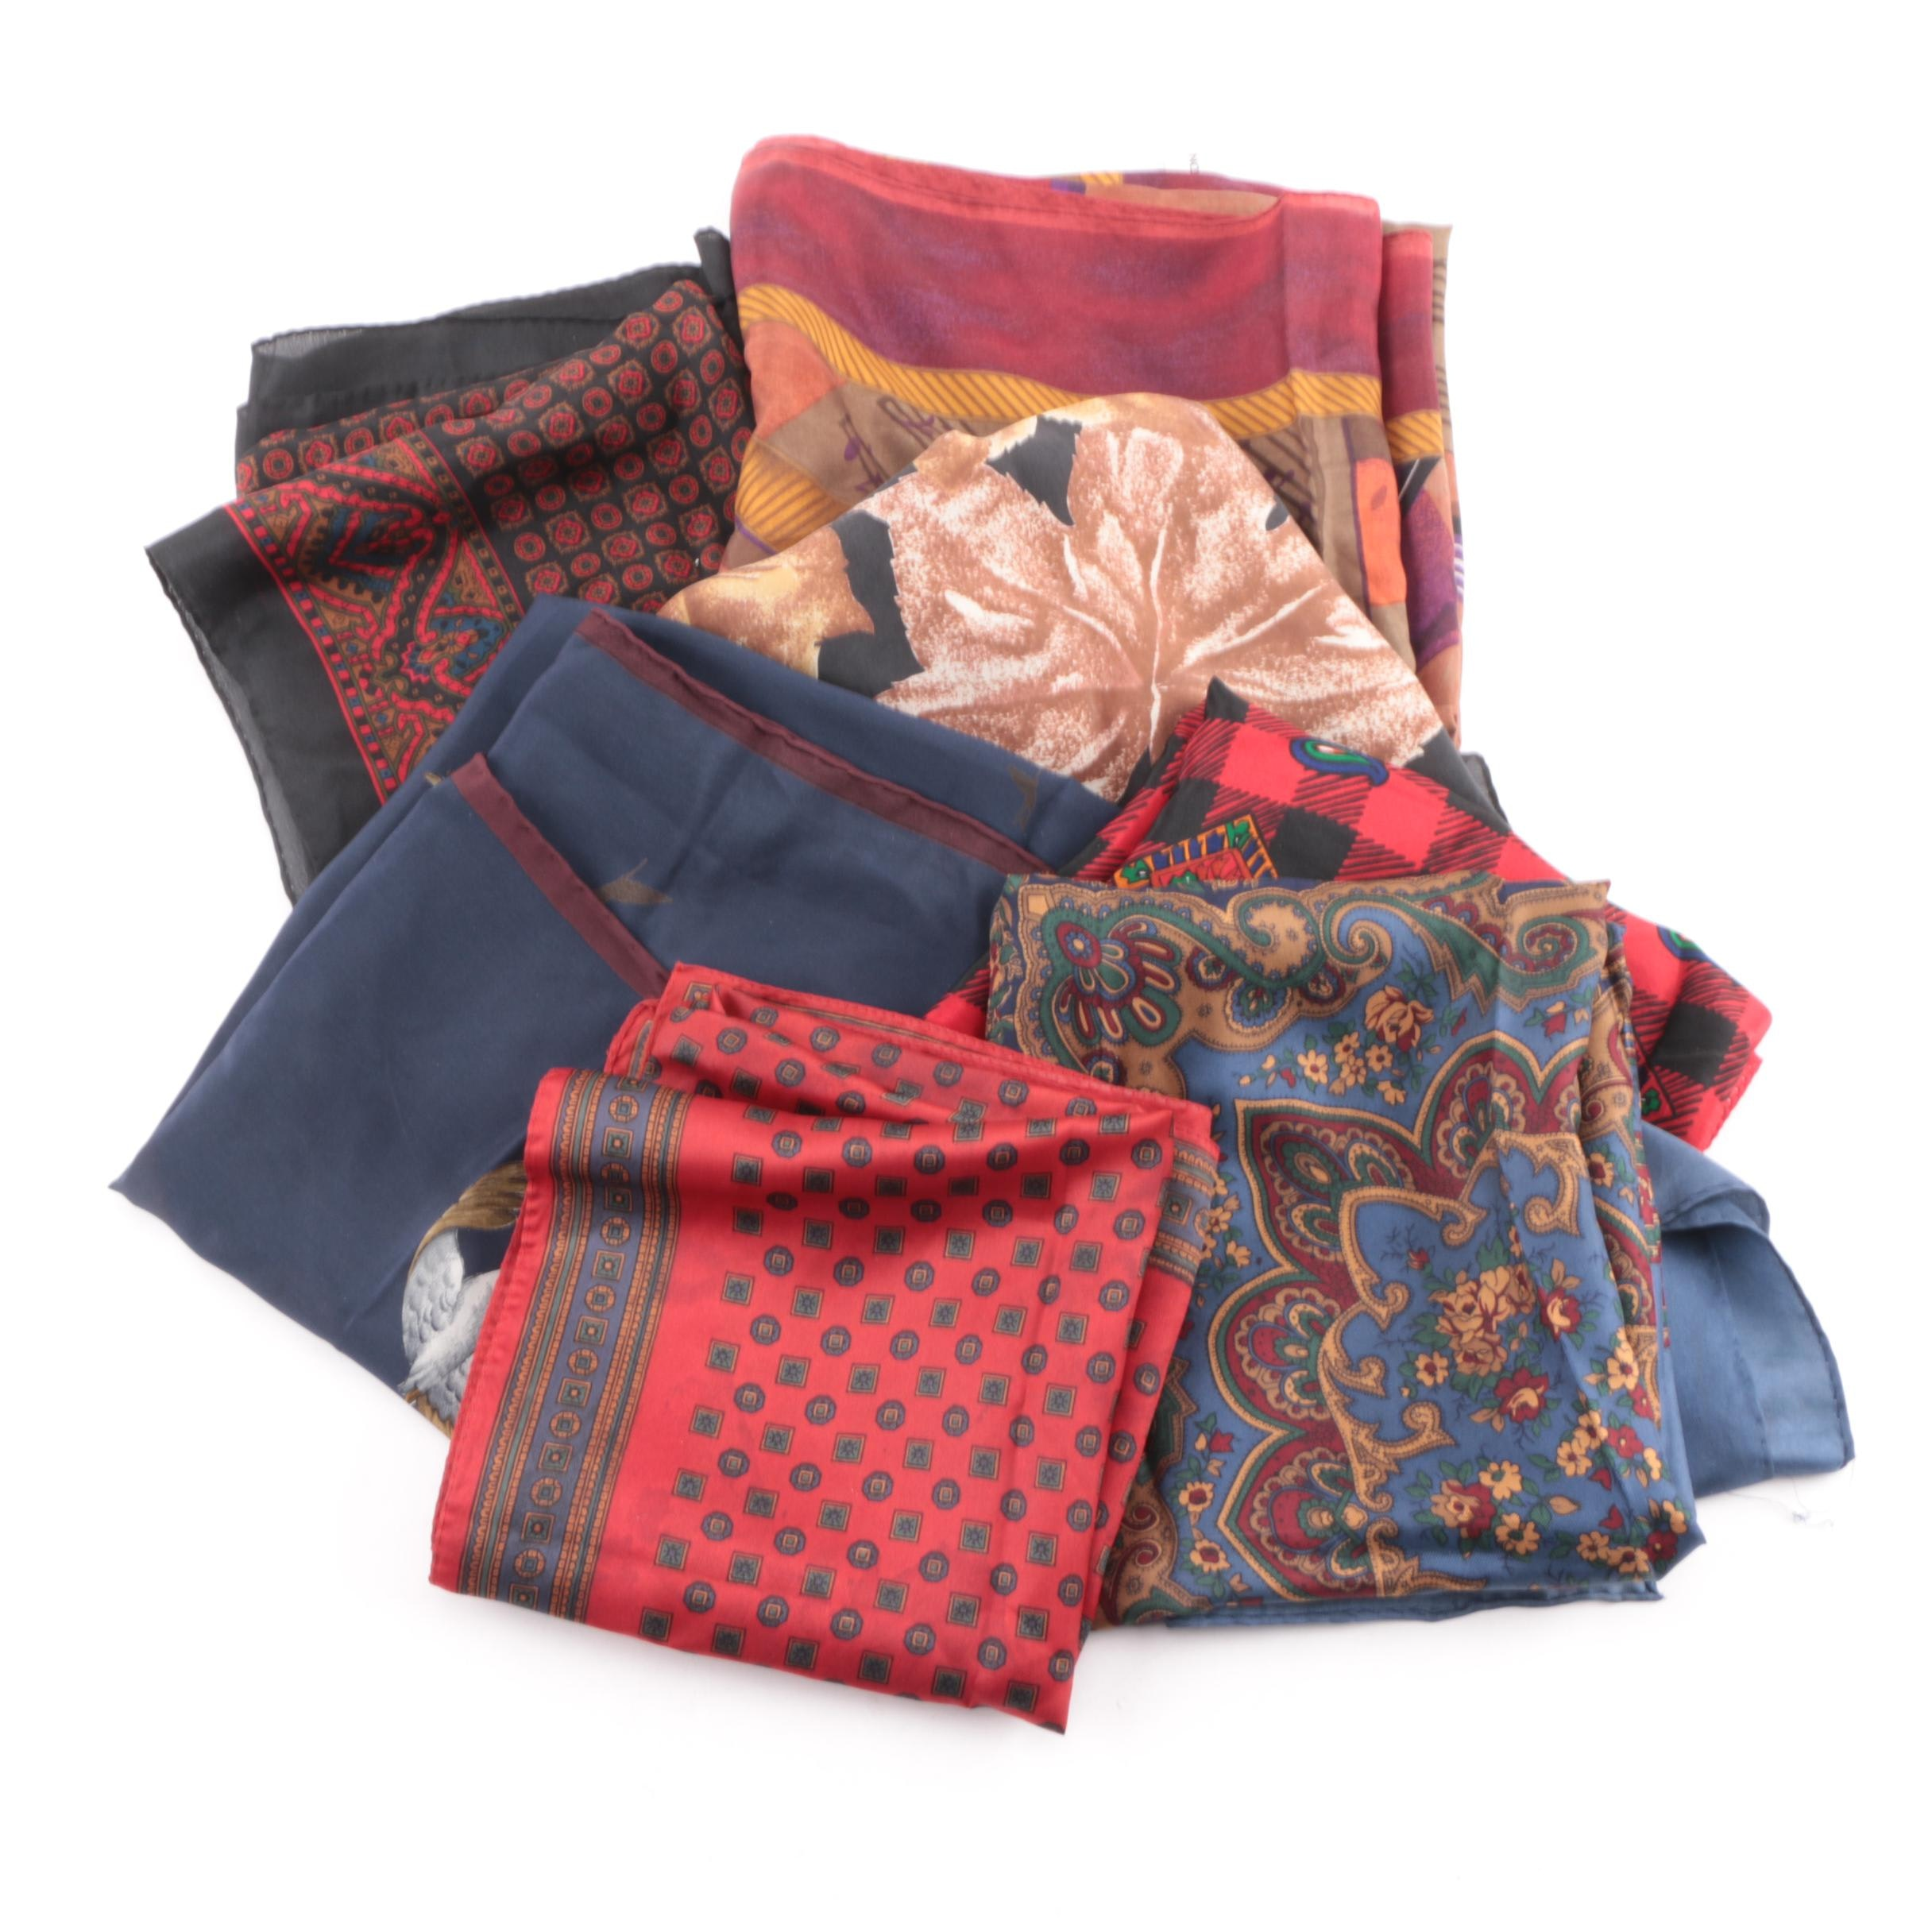 Women's Fashion Scarves Including Echo and Ralph Lauren